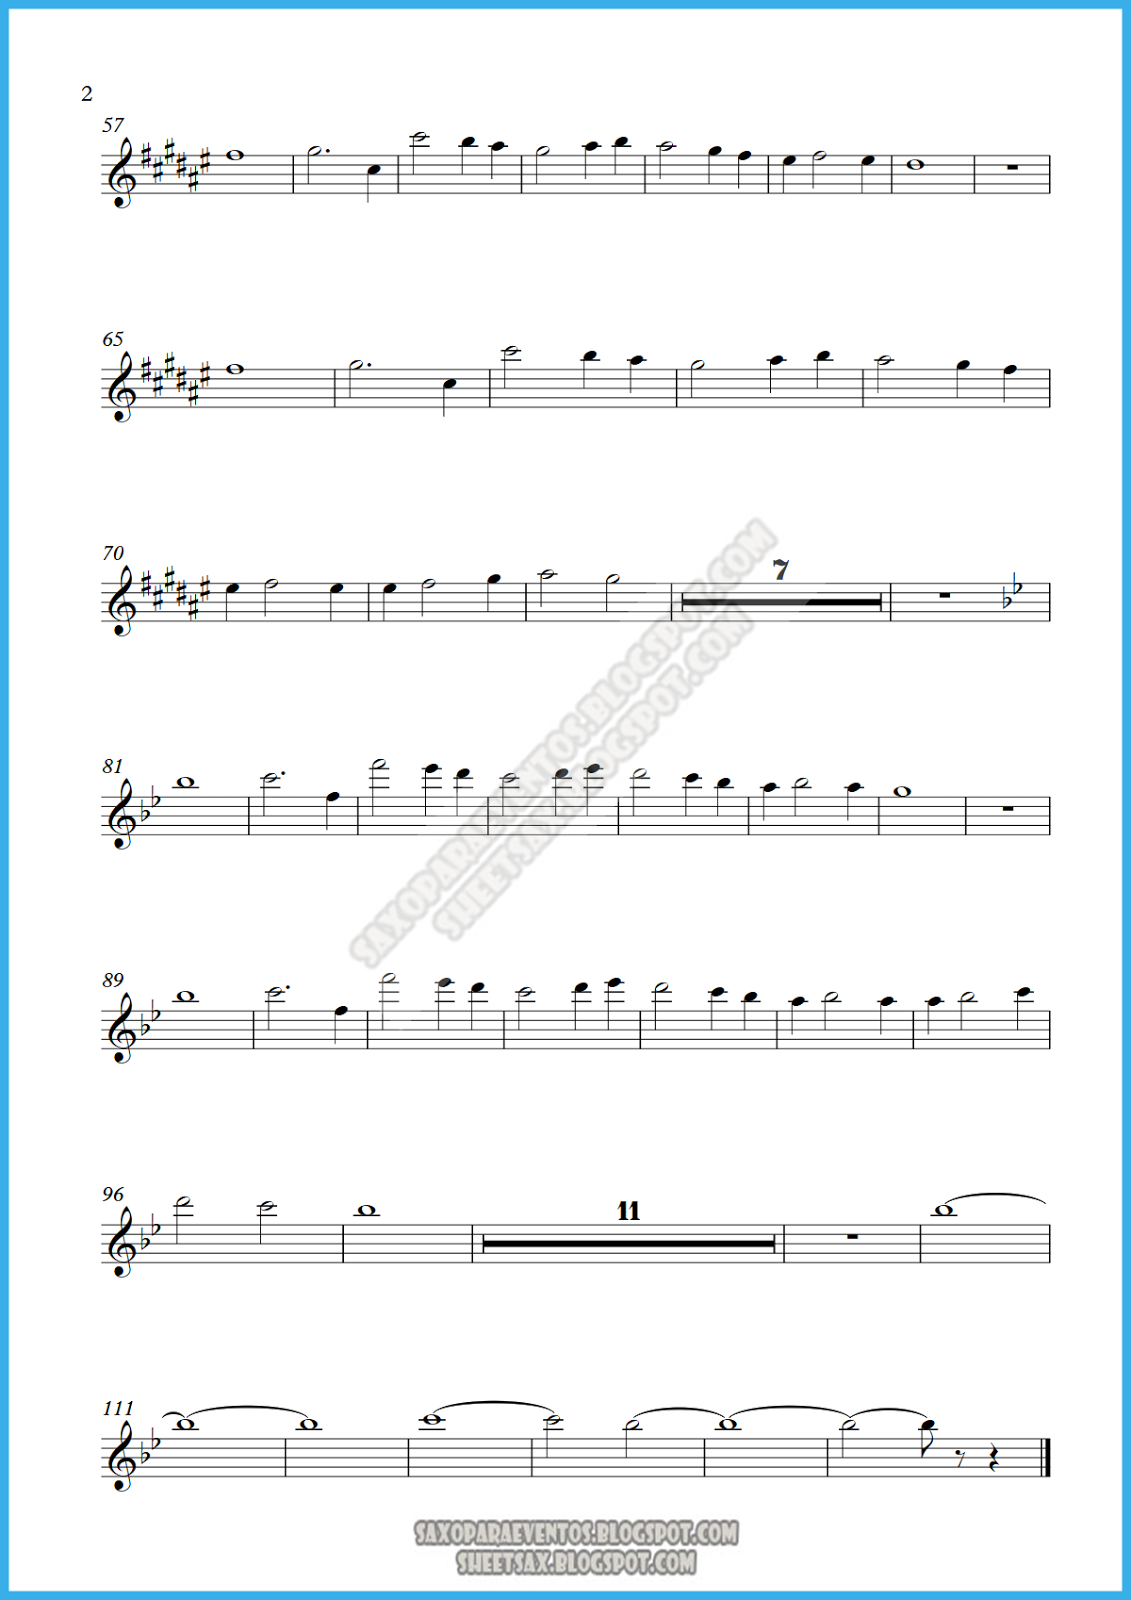 Free Sheet Music For Piano Solo My Heart Will Go On